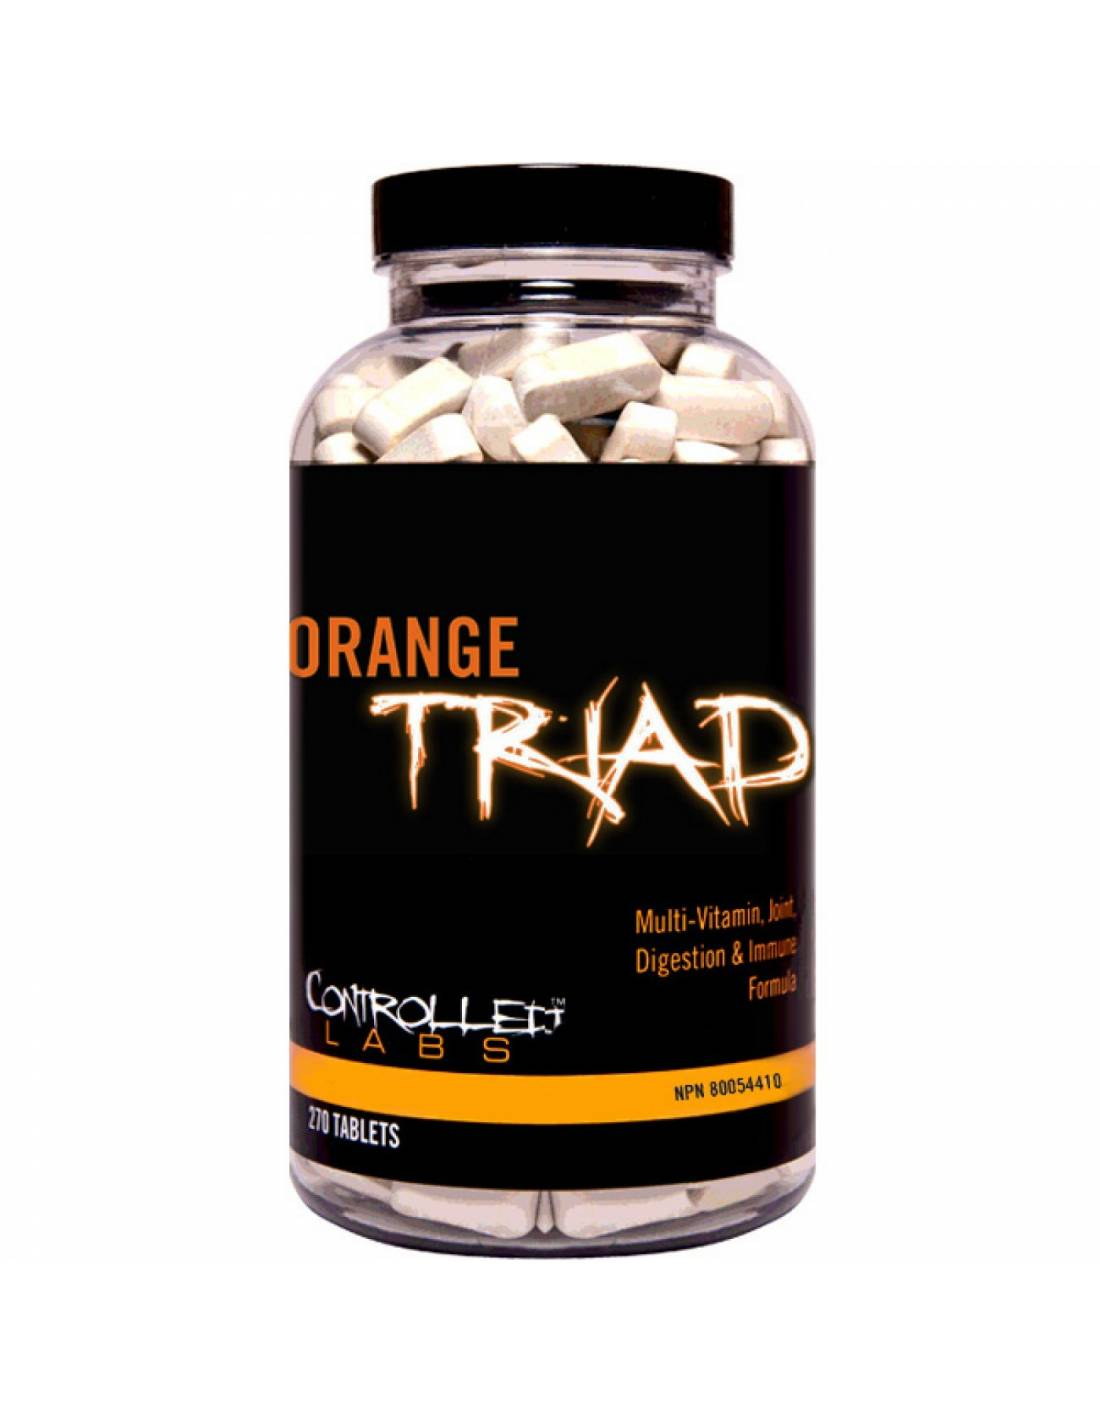 Orange Triad 270tabs